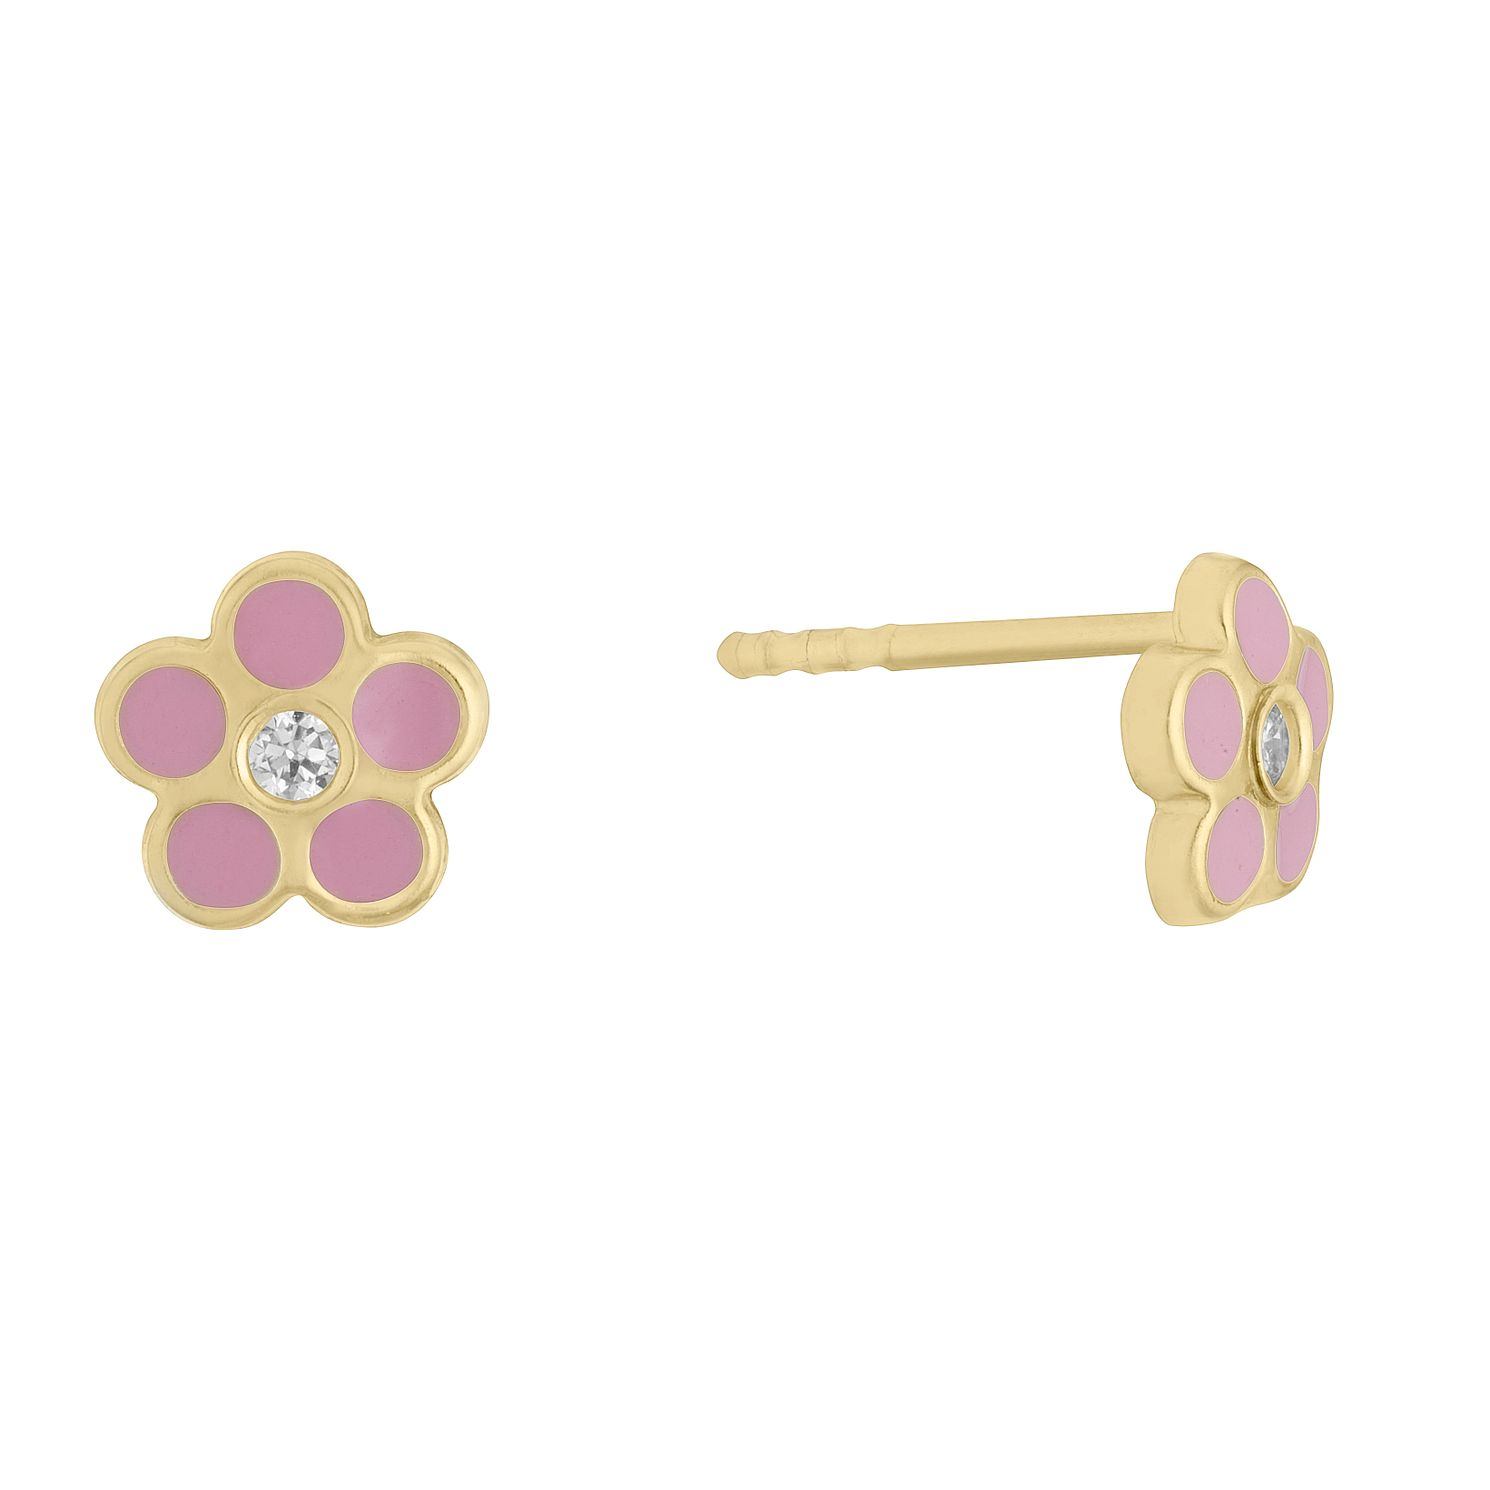 Kids' 9ct Yellow Gold CZ Pink Enamel Flower Stud Earrings - Product number 3133435